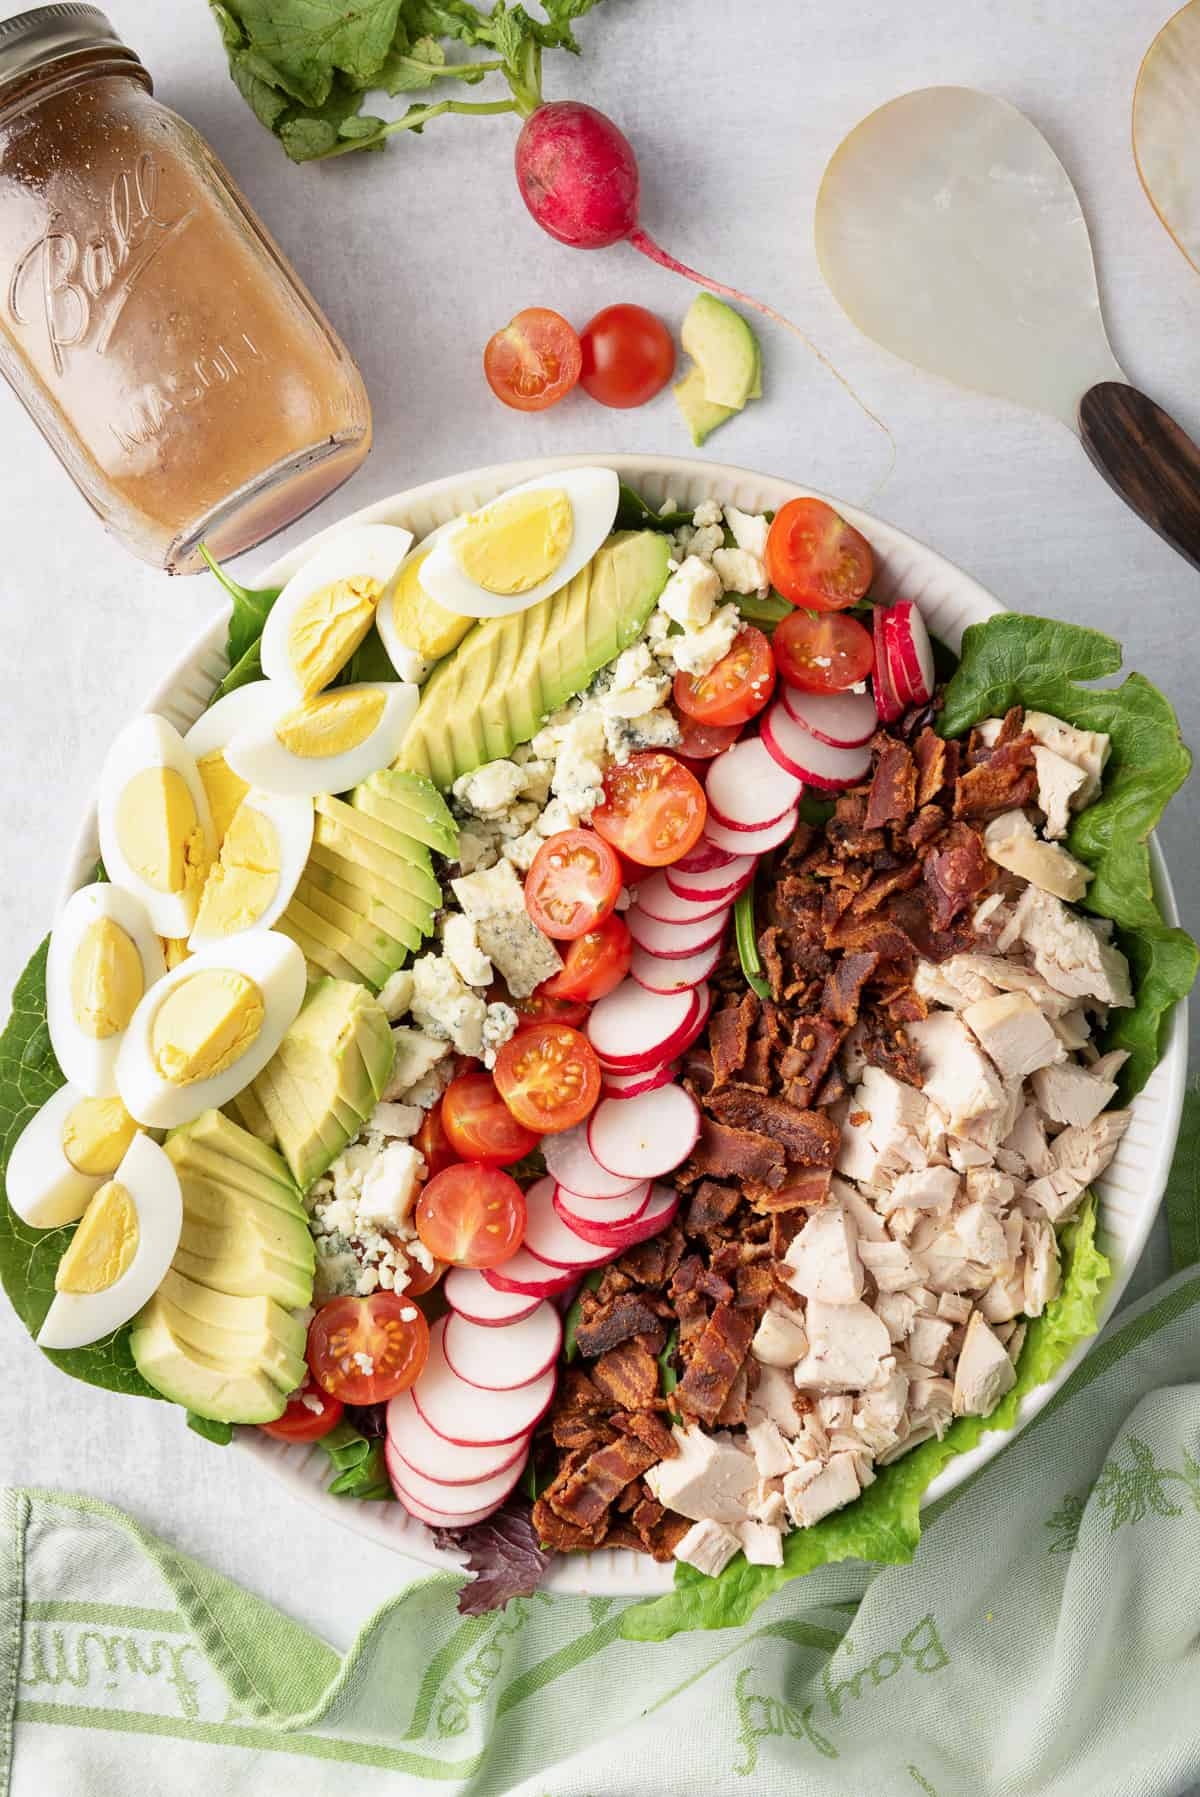 An over the top shot of the Chicken Cobb Salad ingredients lined up in a large white serving bowl.